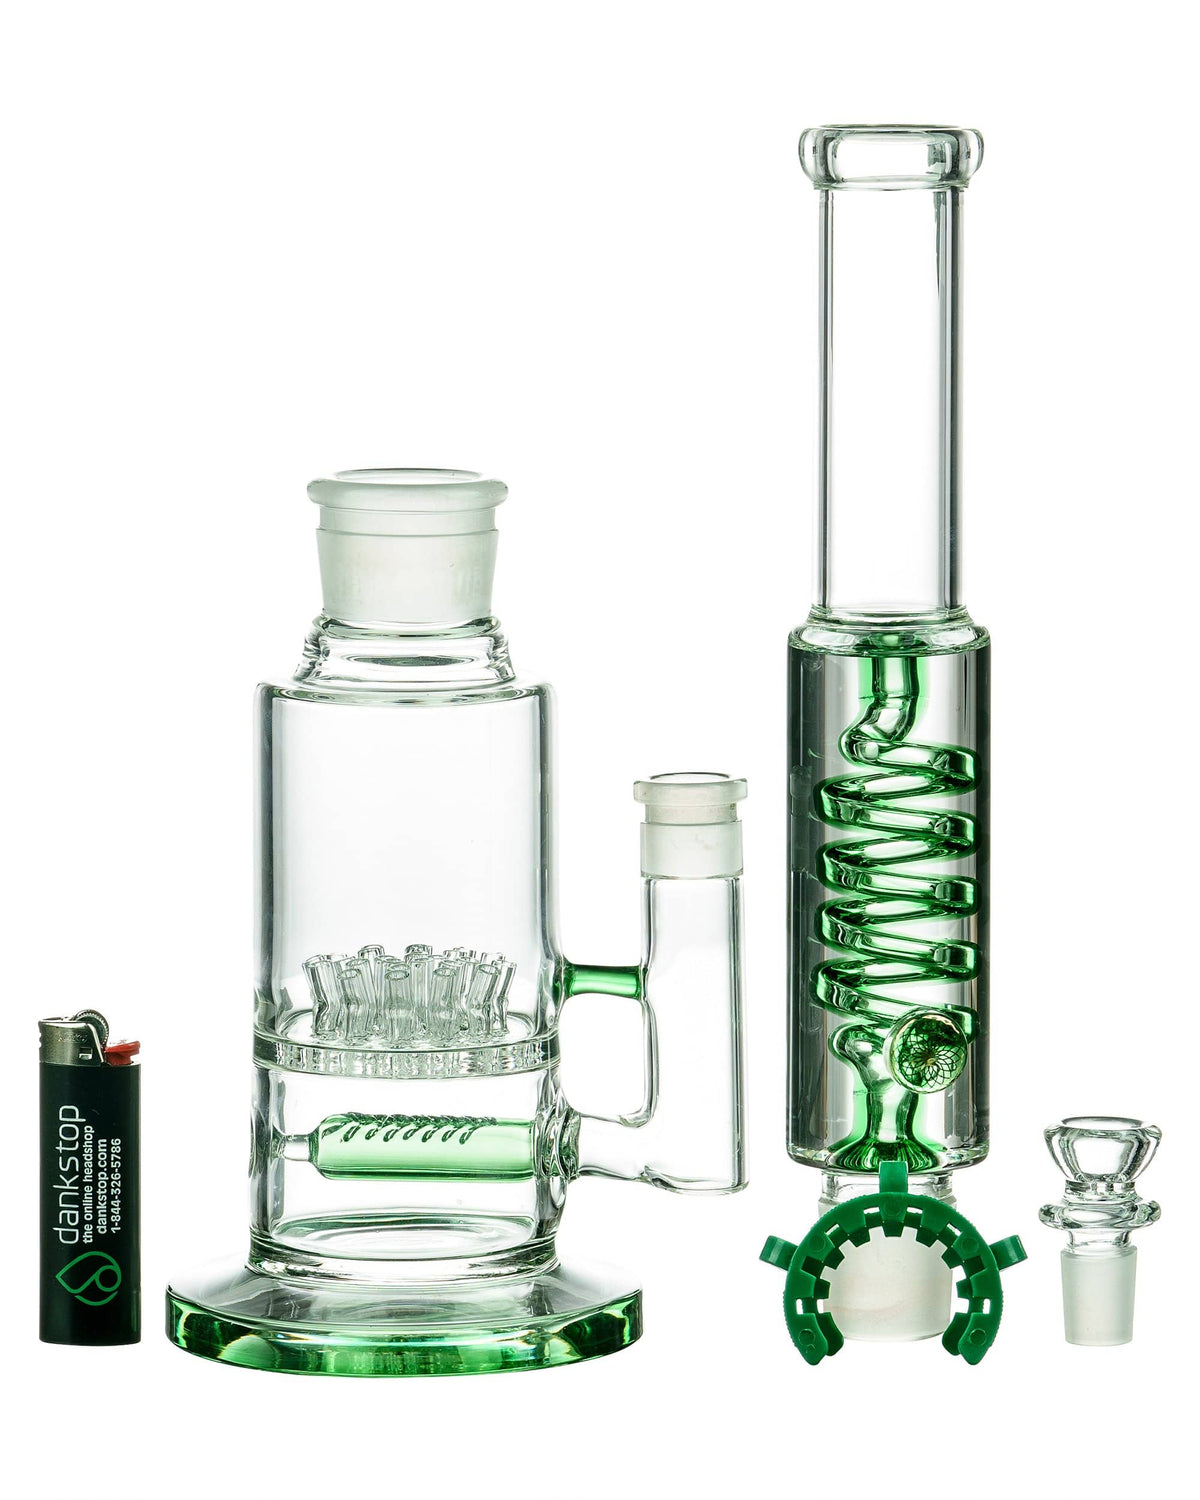 Big Sprinkler to Removable Glycerin Coil Bong